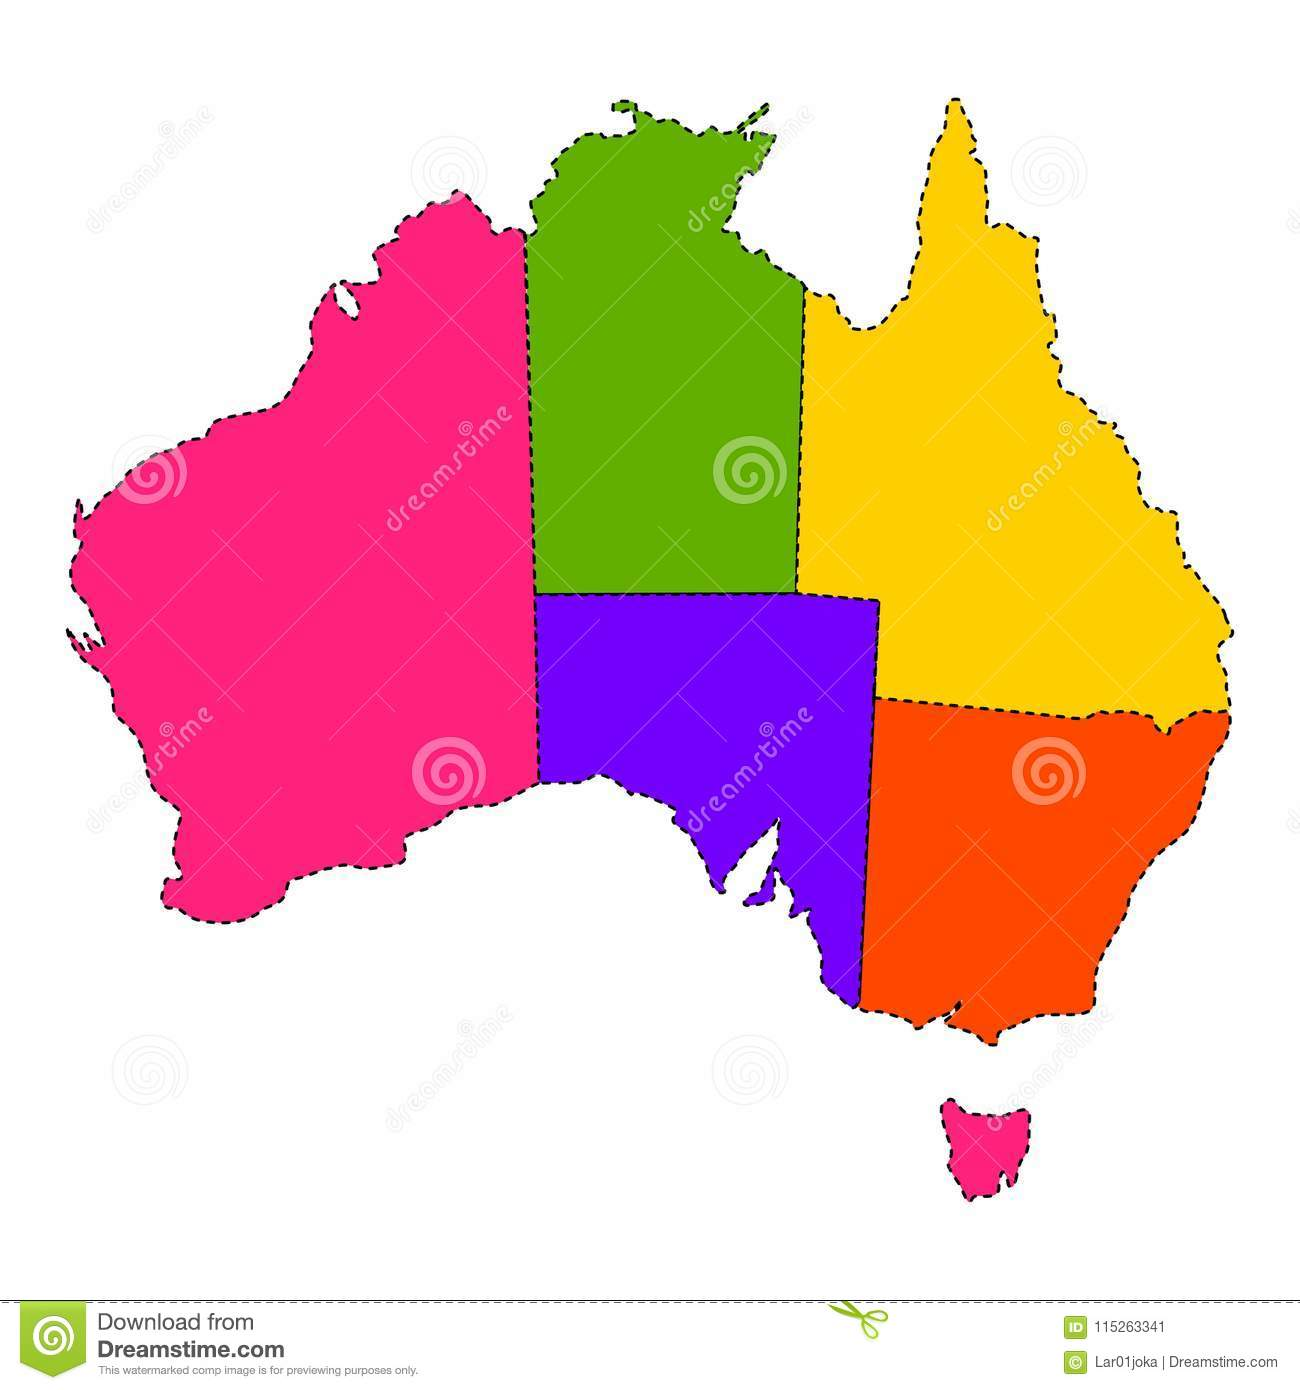 Political map of Australia stock vector. Illustration of continent ...